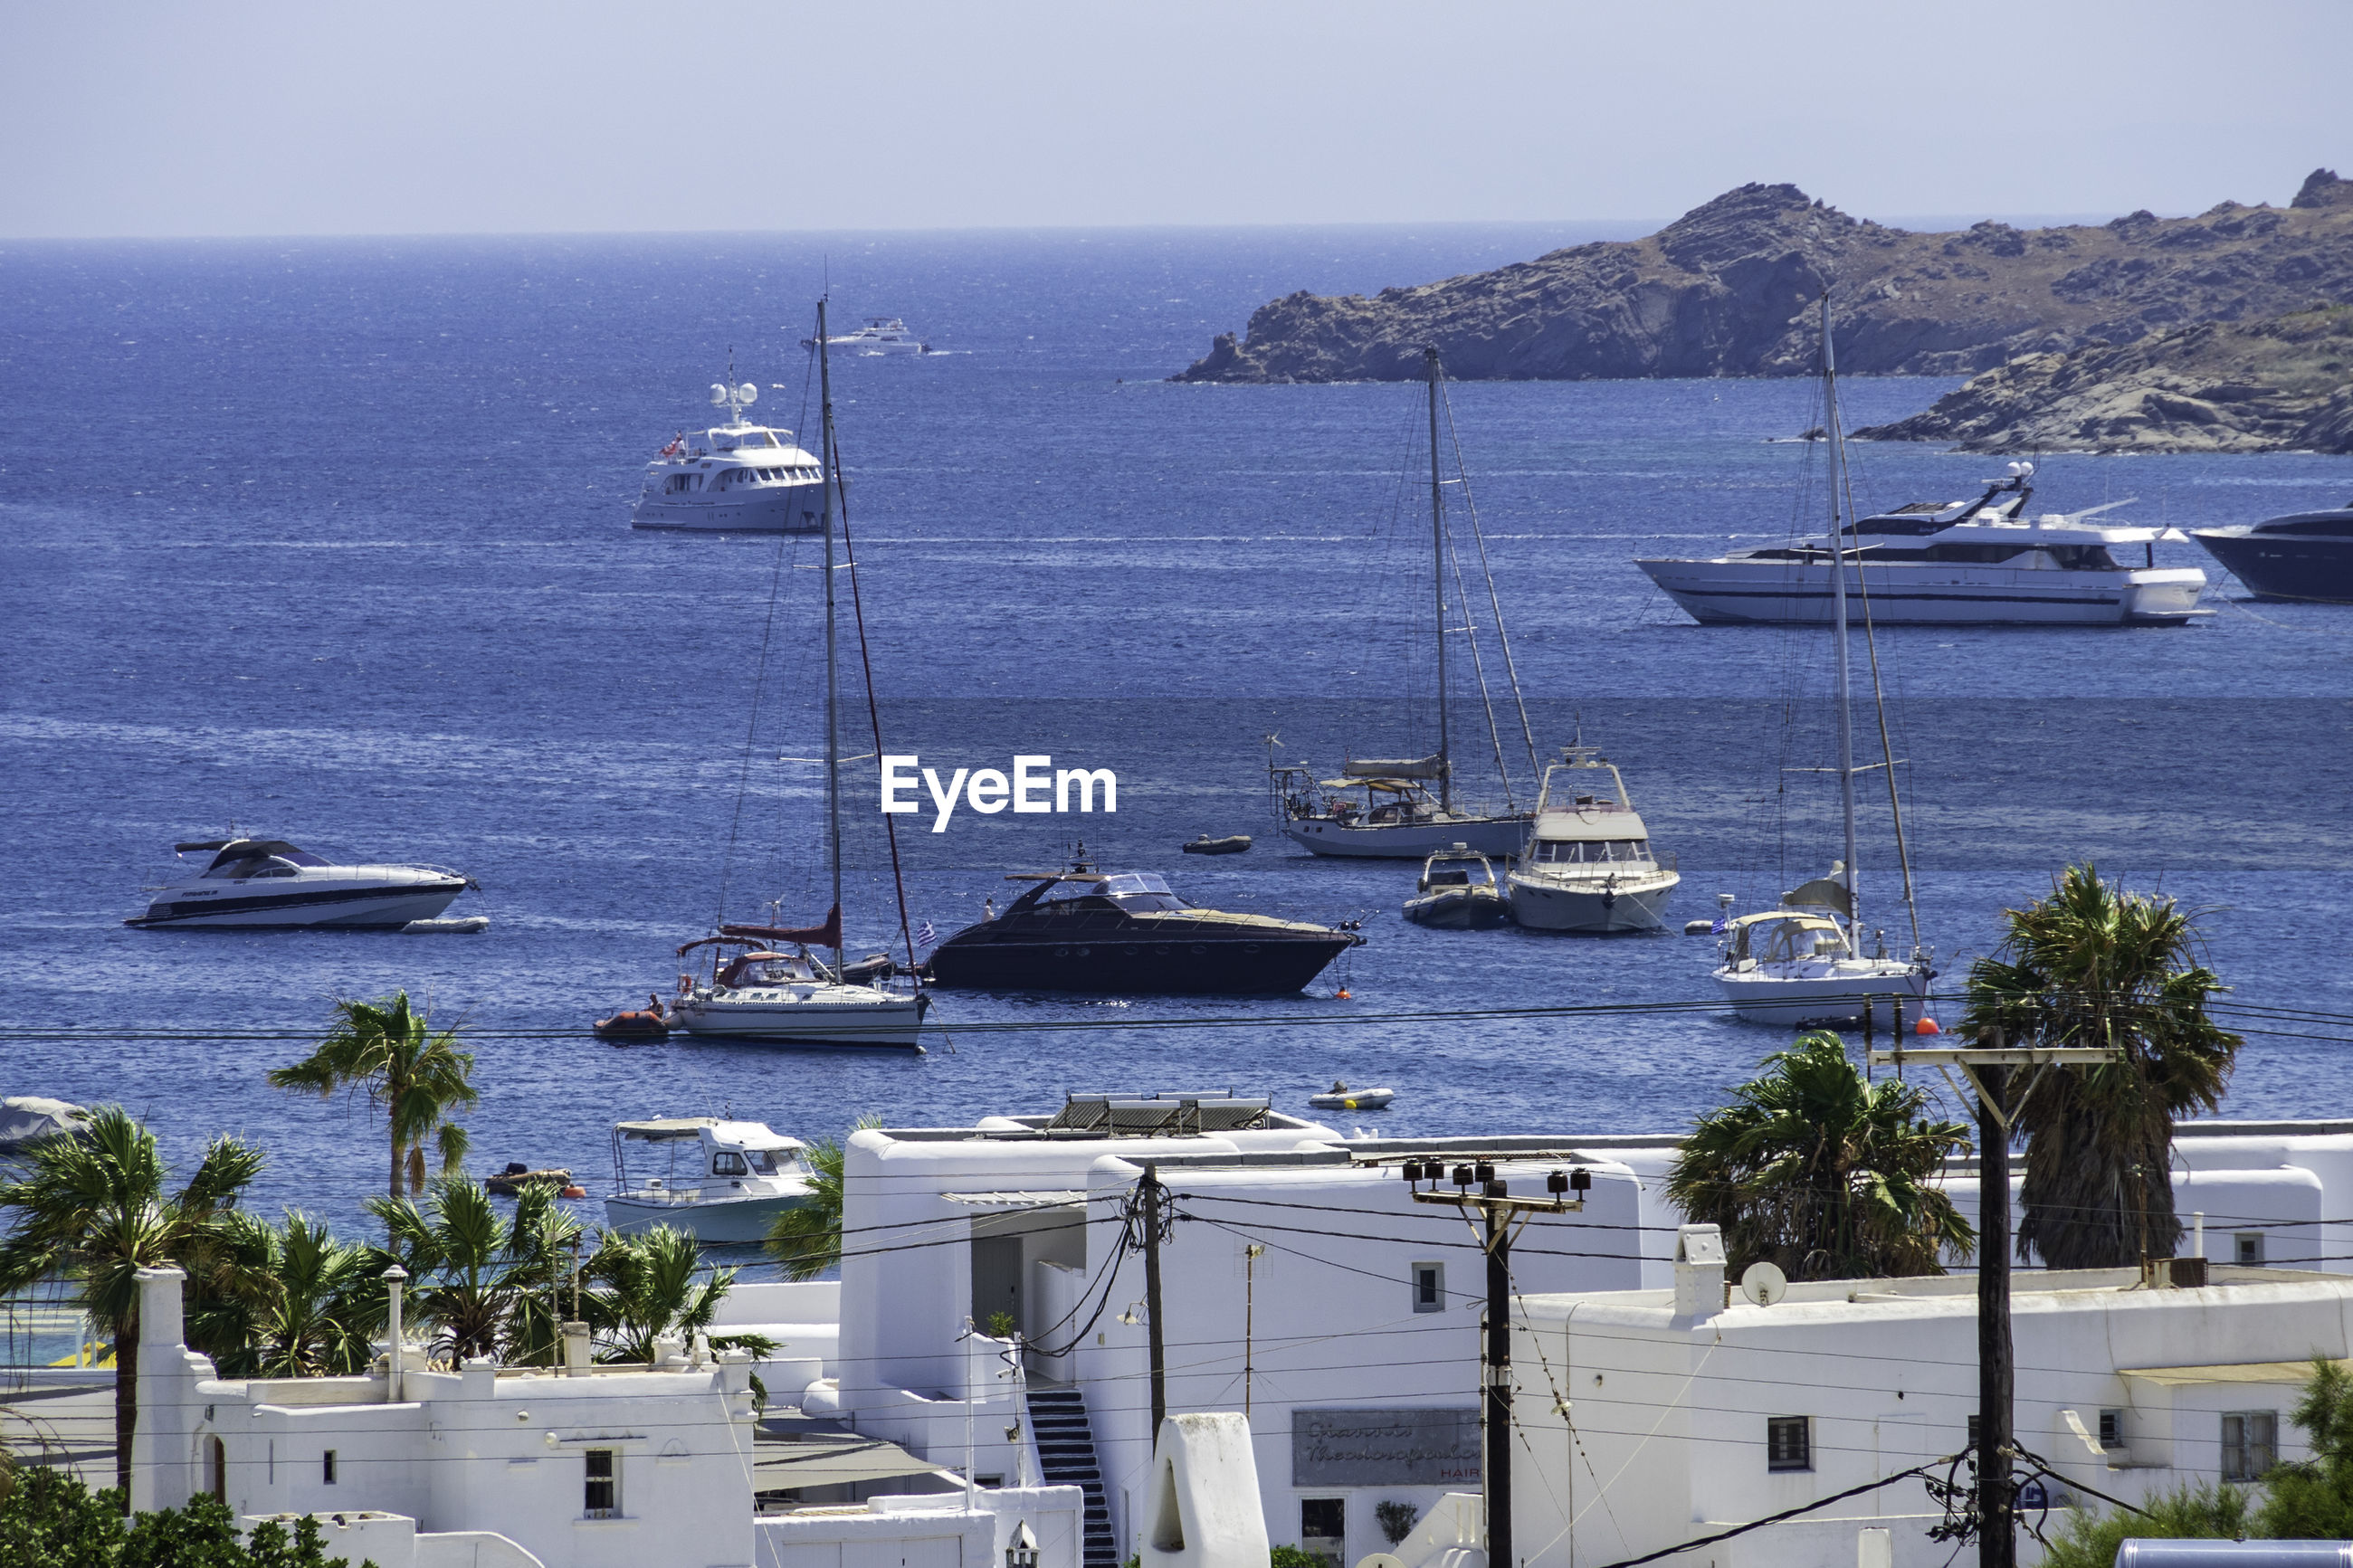 Sailboats, speedboats and yachts on sea in ornos bay mykonos against sky